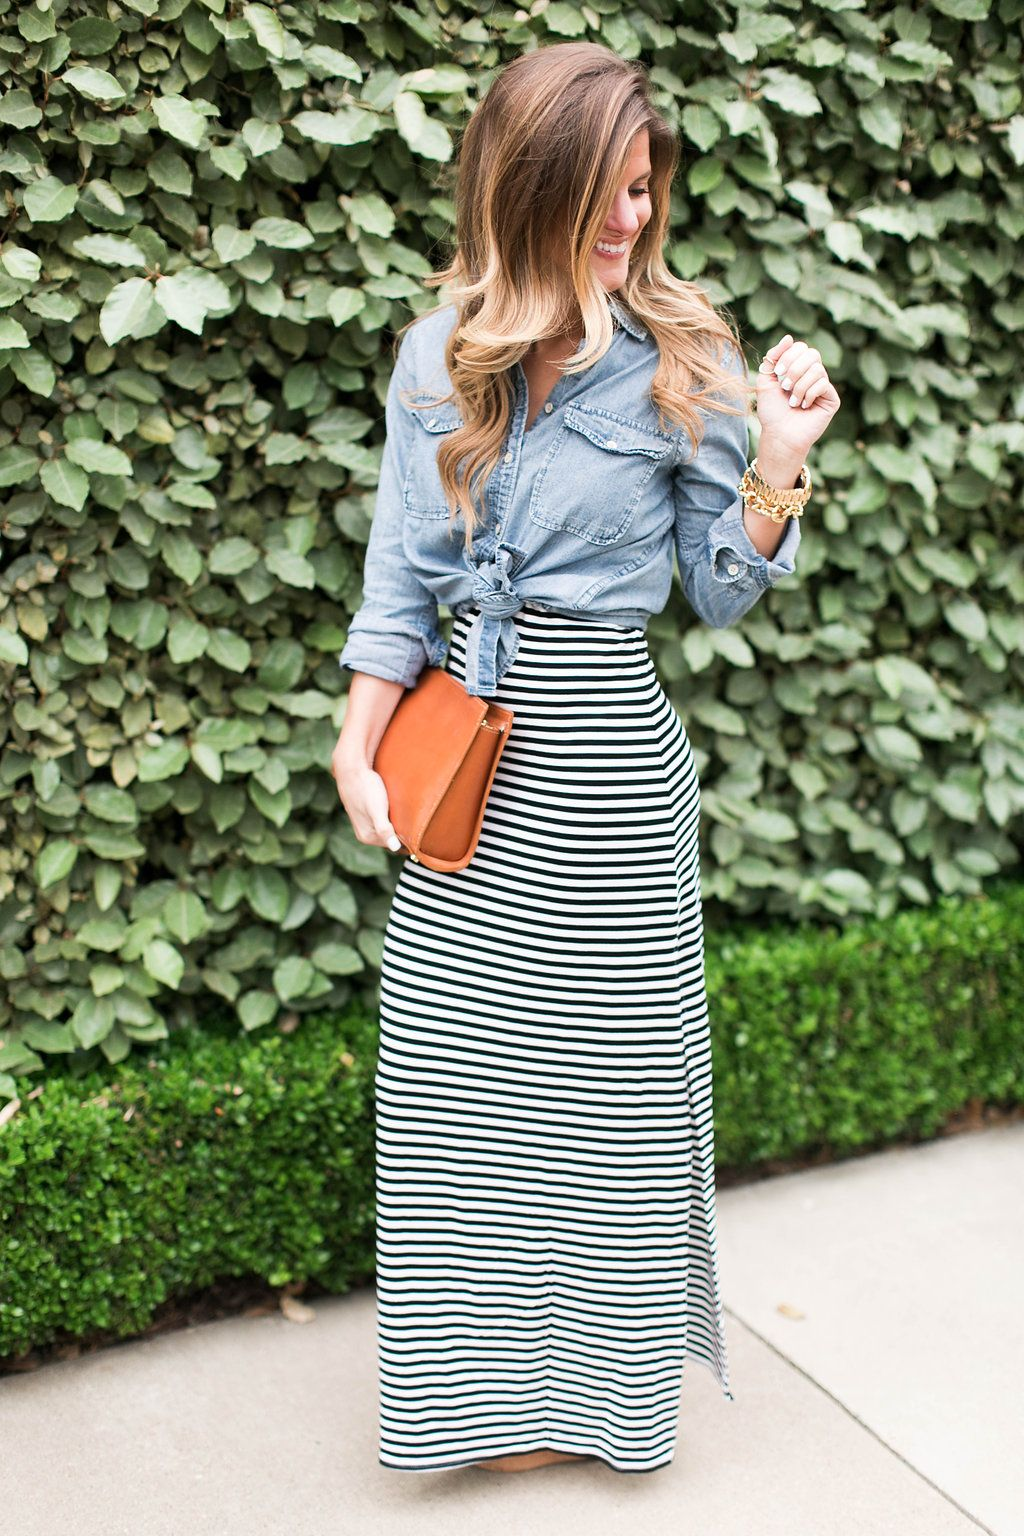 sale retailer 17146 c3d53 How to Wear a Denim Shirt    13+ ways to style your favorite denim shirt     striped maxi dress + chambray shirt on top tied up + gigi NY Cognac leather  ...